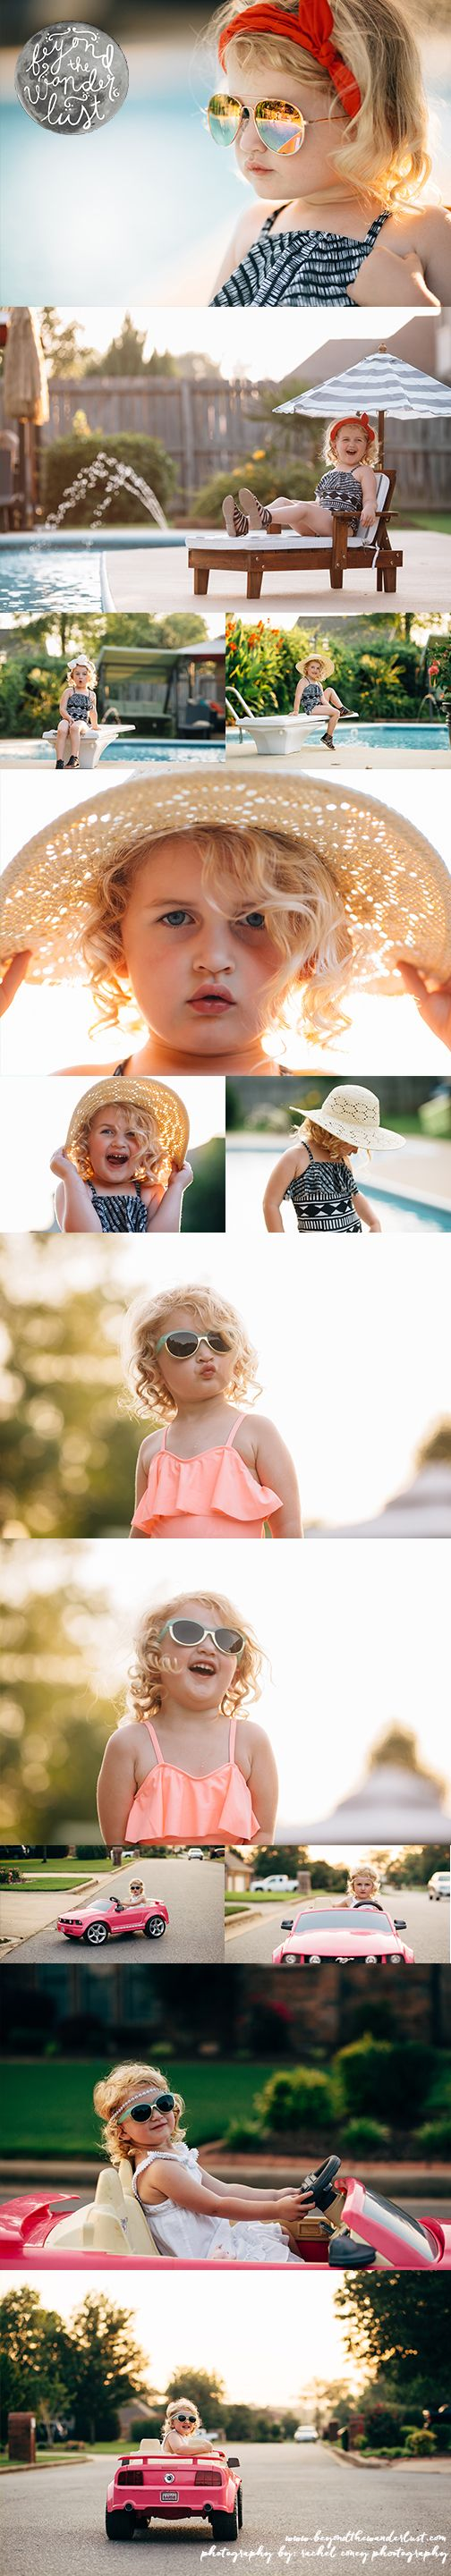 little girl pictures, styled sessions, birthday picture ideas, pool pictures